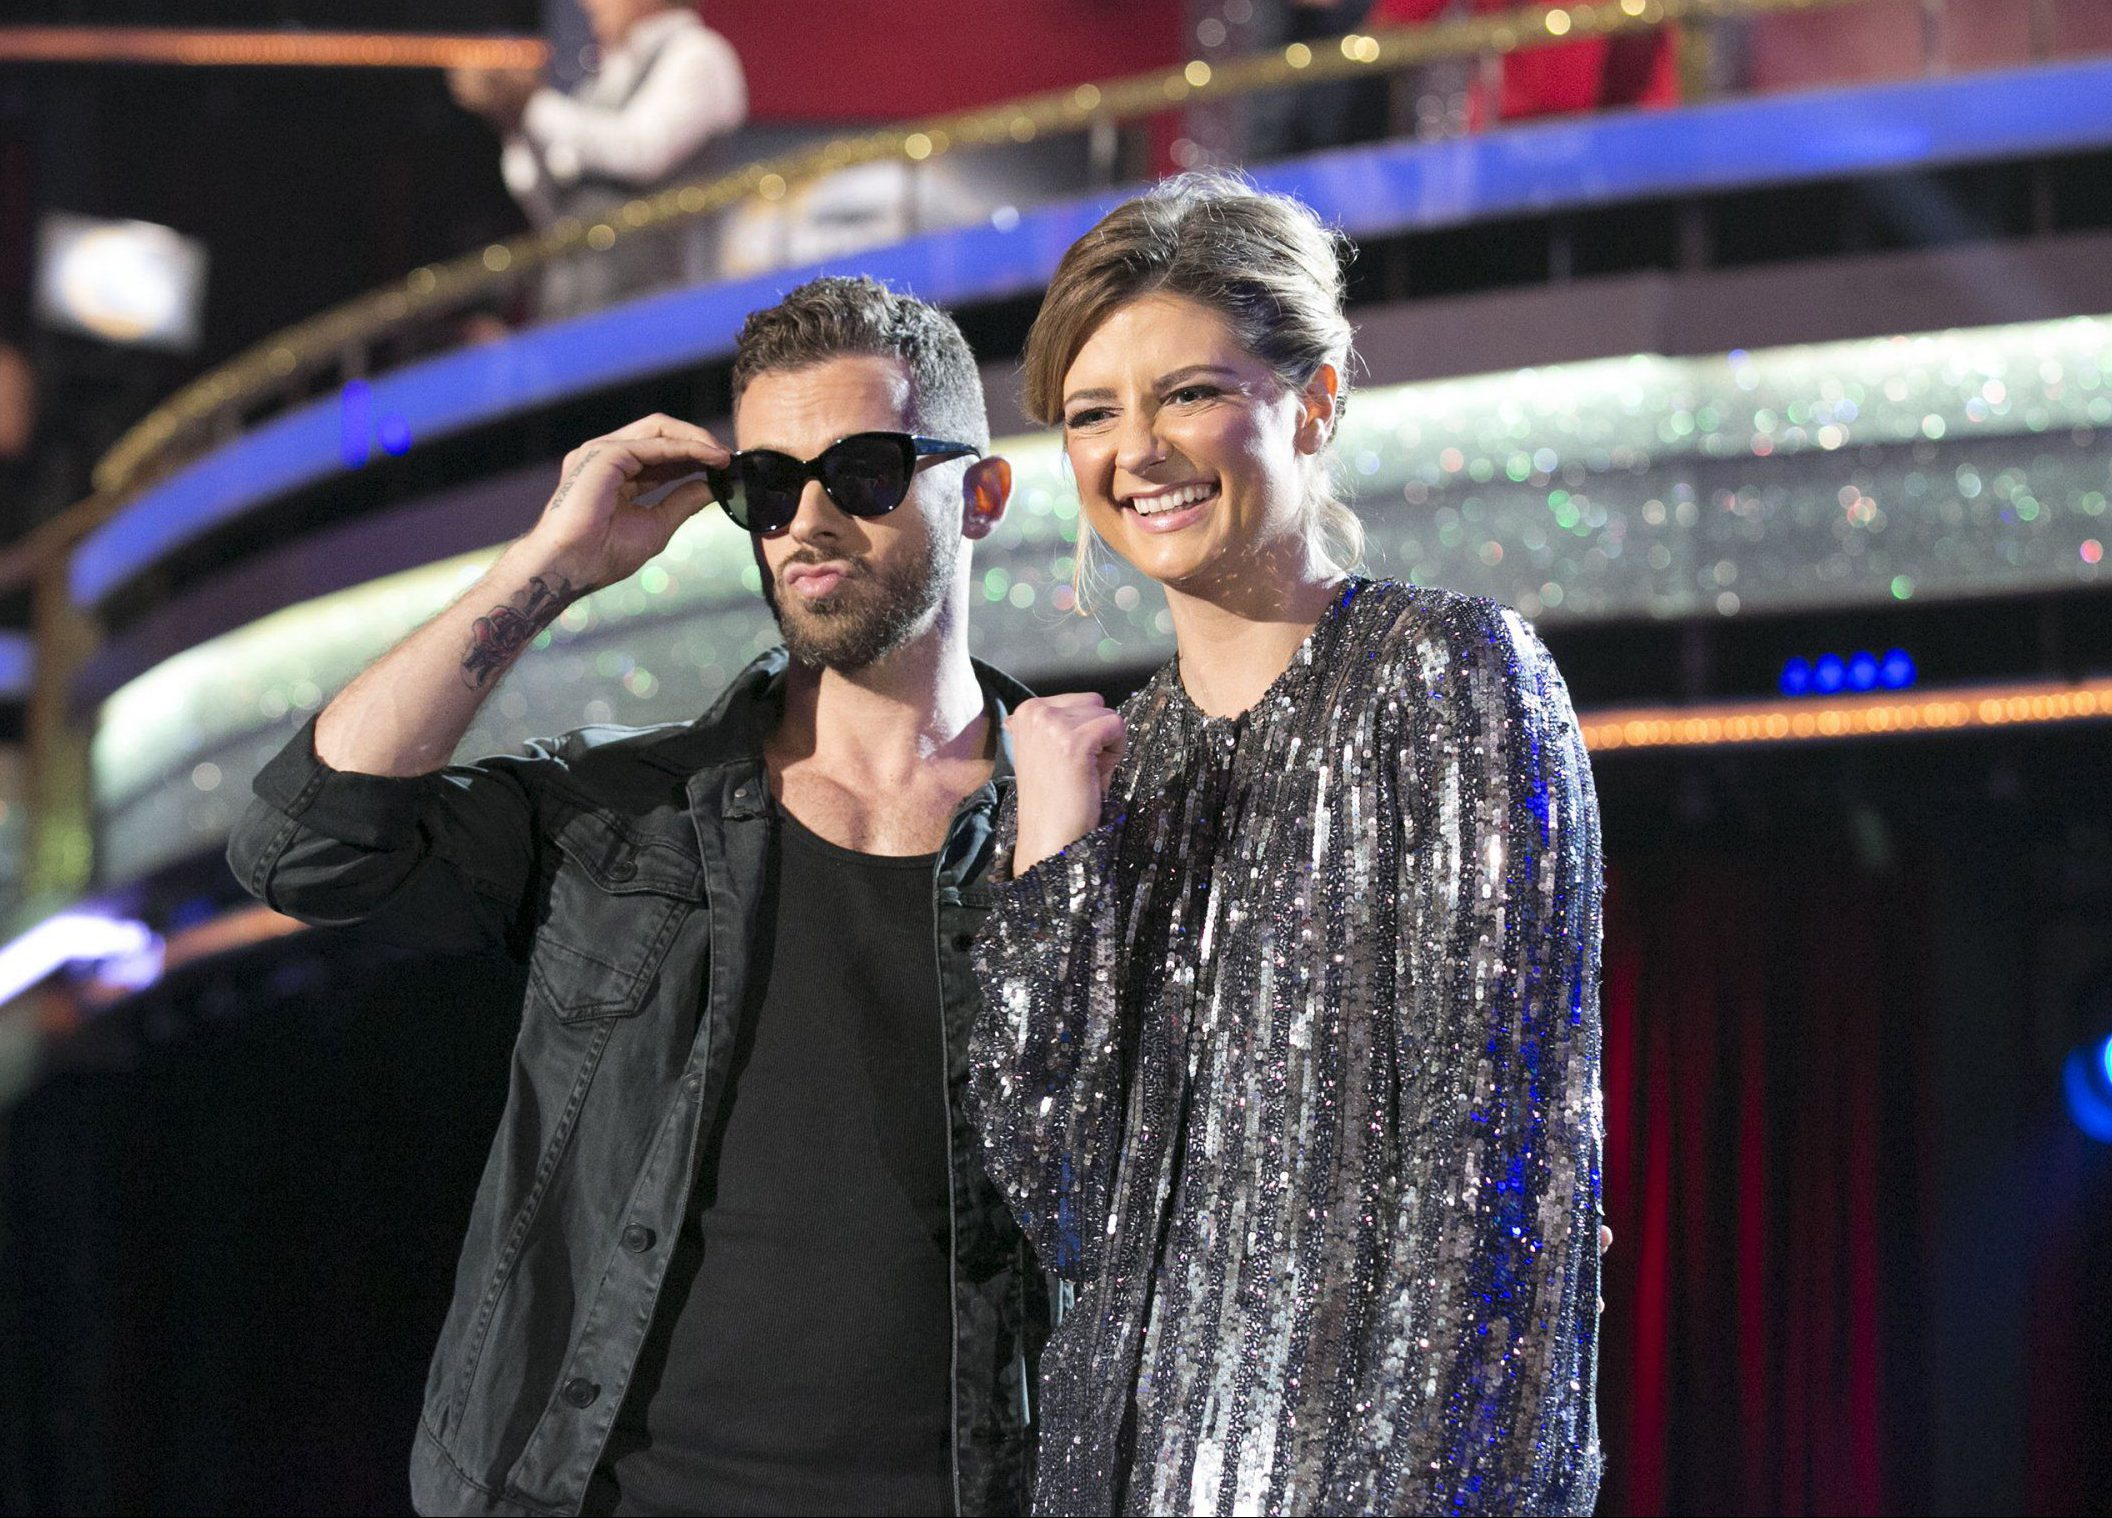 """DANCING WITH THE STARS - """"Episode 2203 - The remaining celebrities will set out to leave a lasting impression with their dances as they commemorate their most memorable year, on """"Dancing with the Stars,"""" live, MONDAY, APRIL 4 (8:00-10:01 p.m. EDT) on the ABC Television Network. (Photo by Adam Taylor/ABC via via Getty Images) ARTEM CHIGVINTSEV, MISCHA BARTON"""